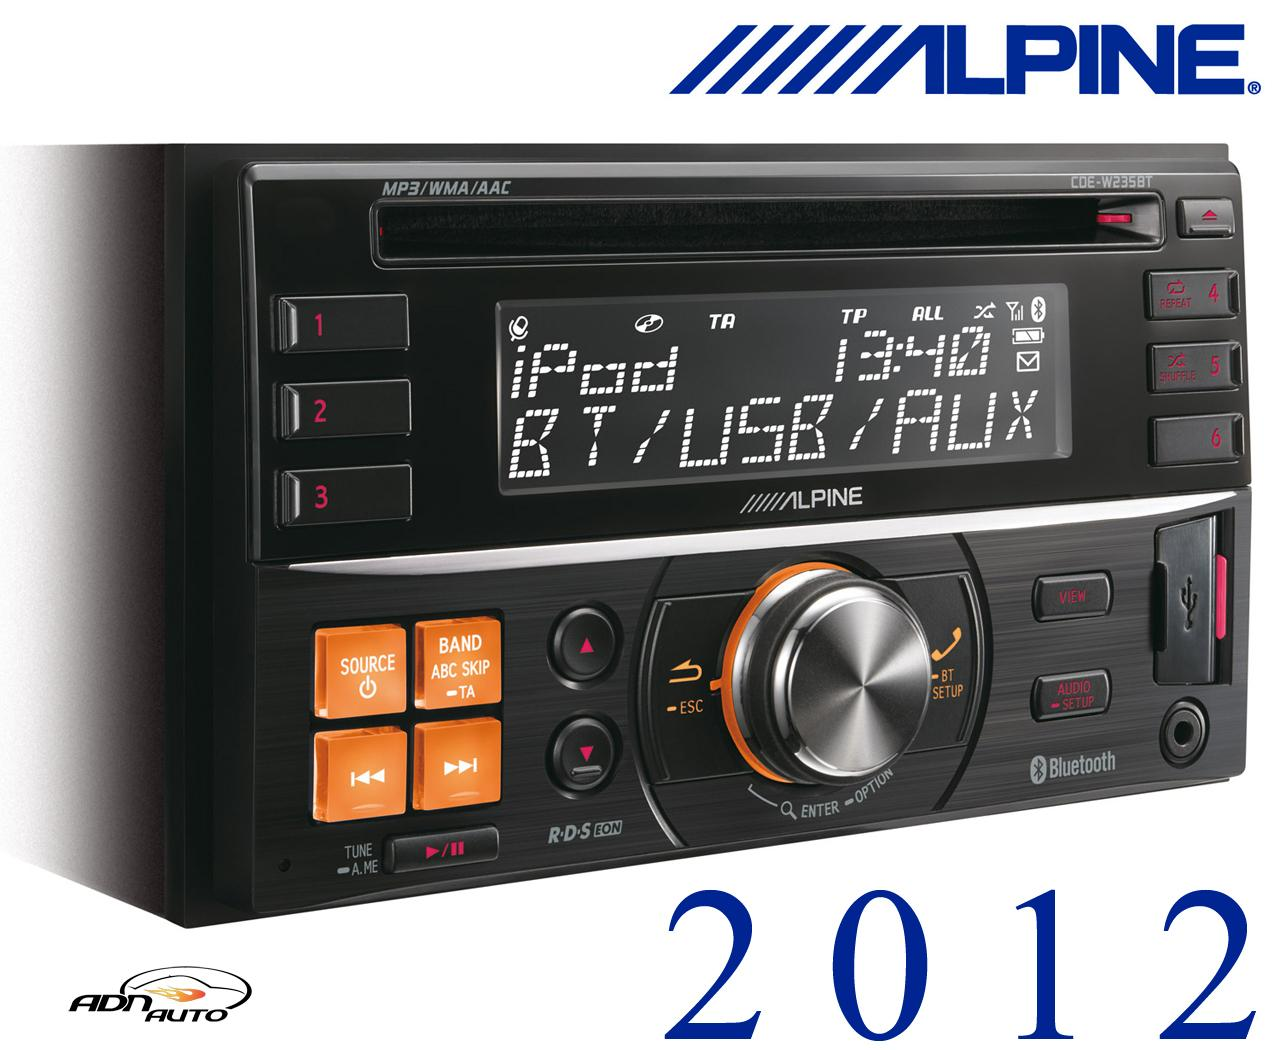 autoradio alpine cde w235bt autoradio 2din cd mp3 wma. Black Bedroom Furniture Sets. Home Design Ideas